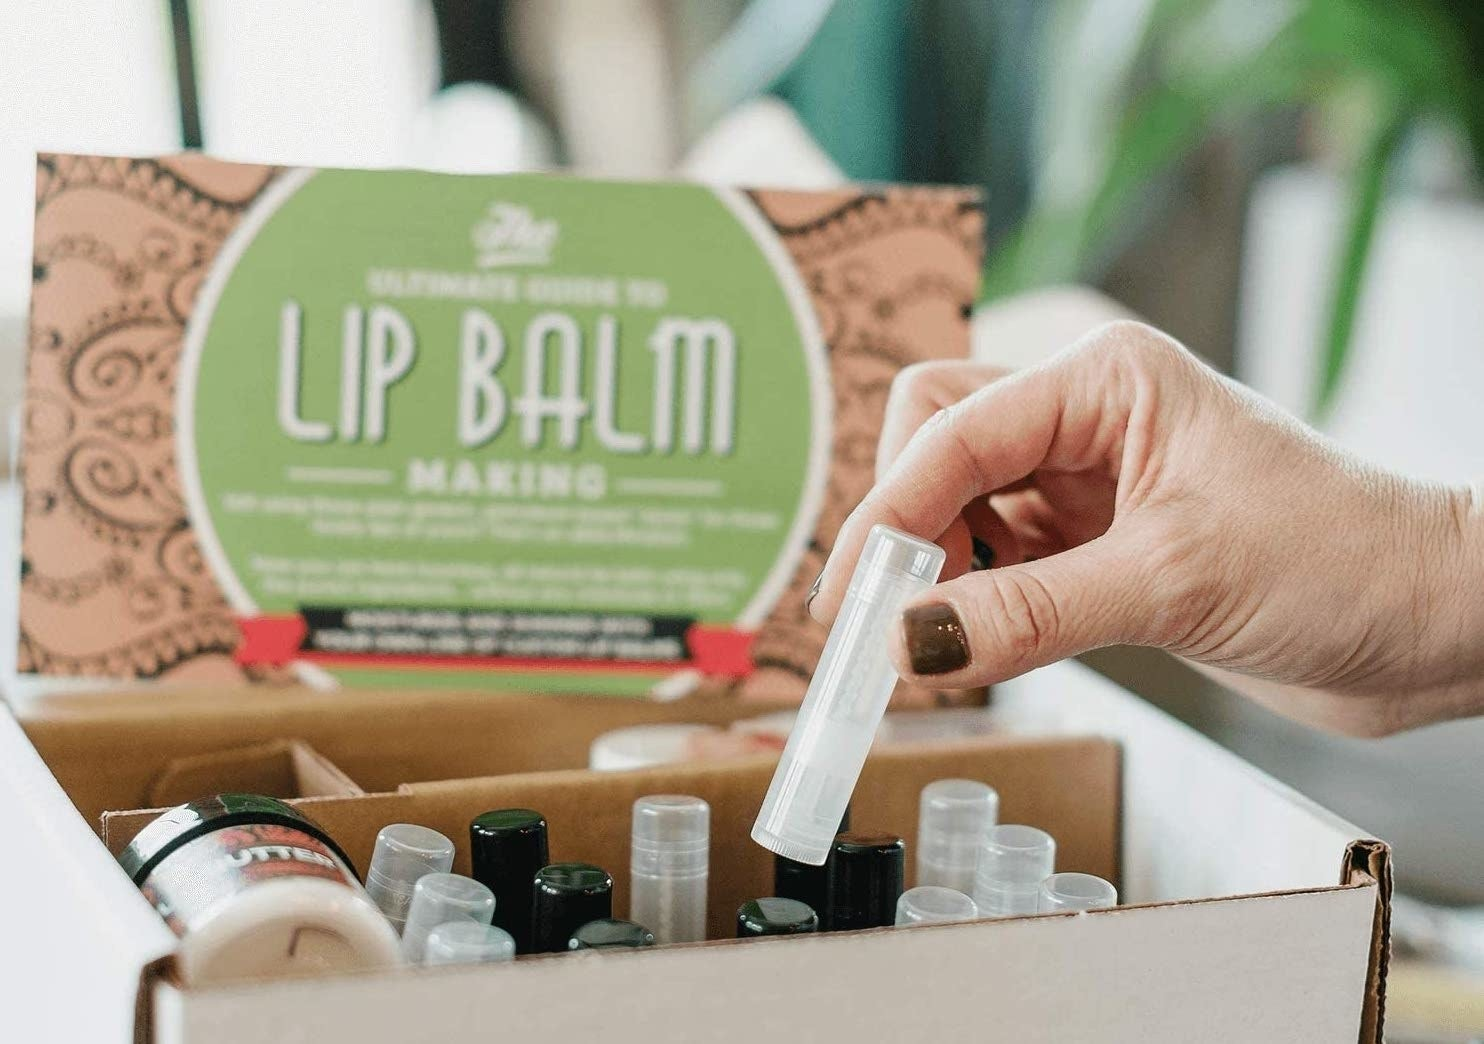 A hand removes a tube from the balm making kit